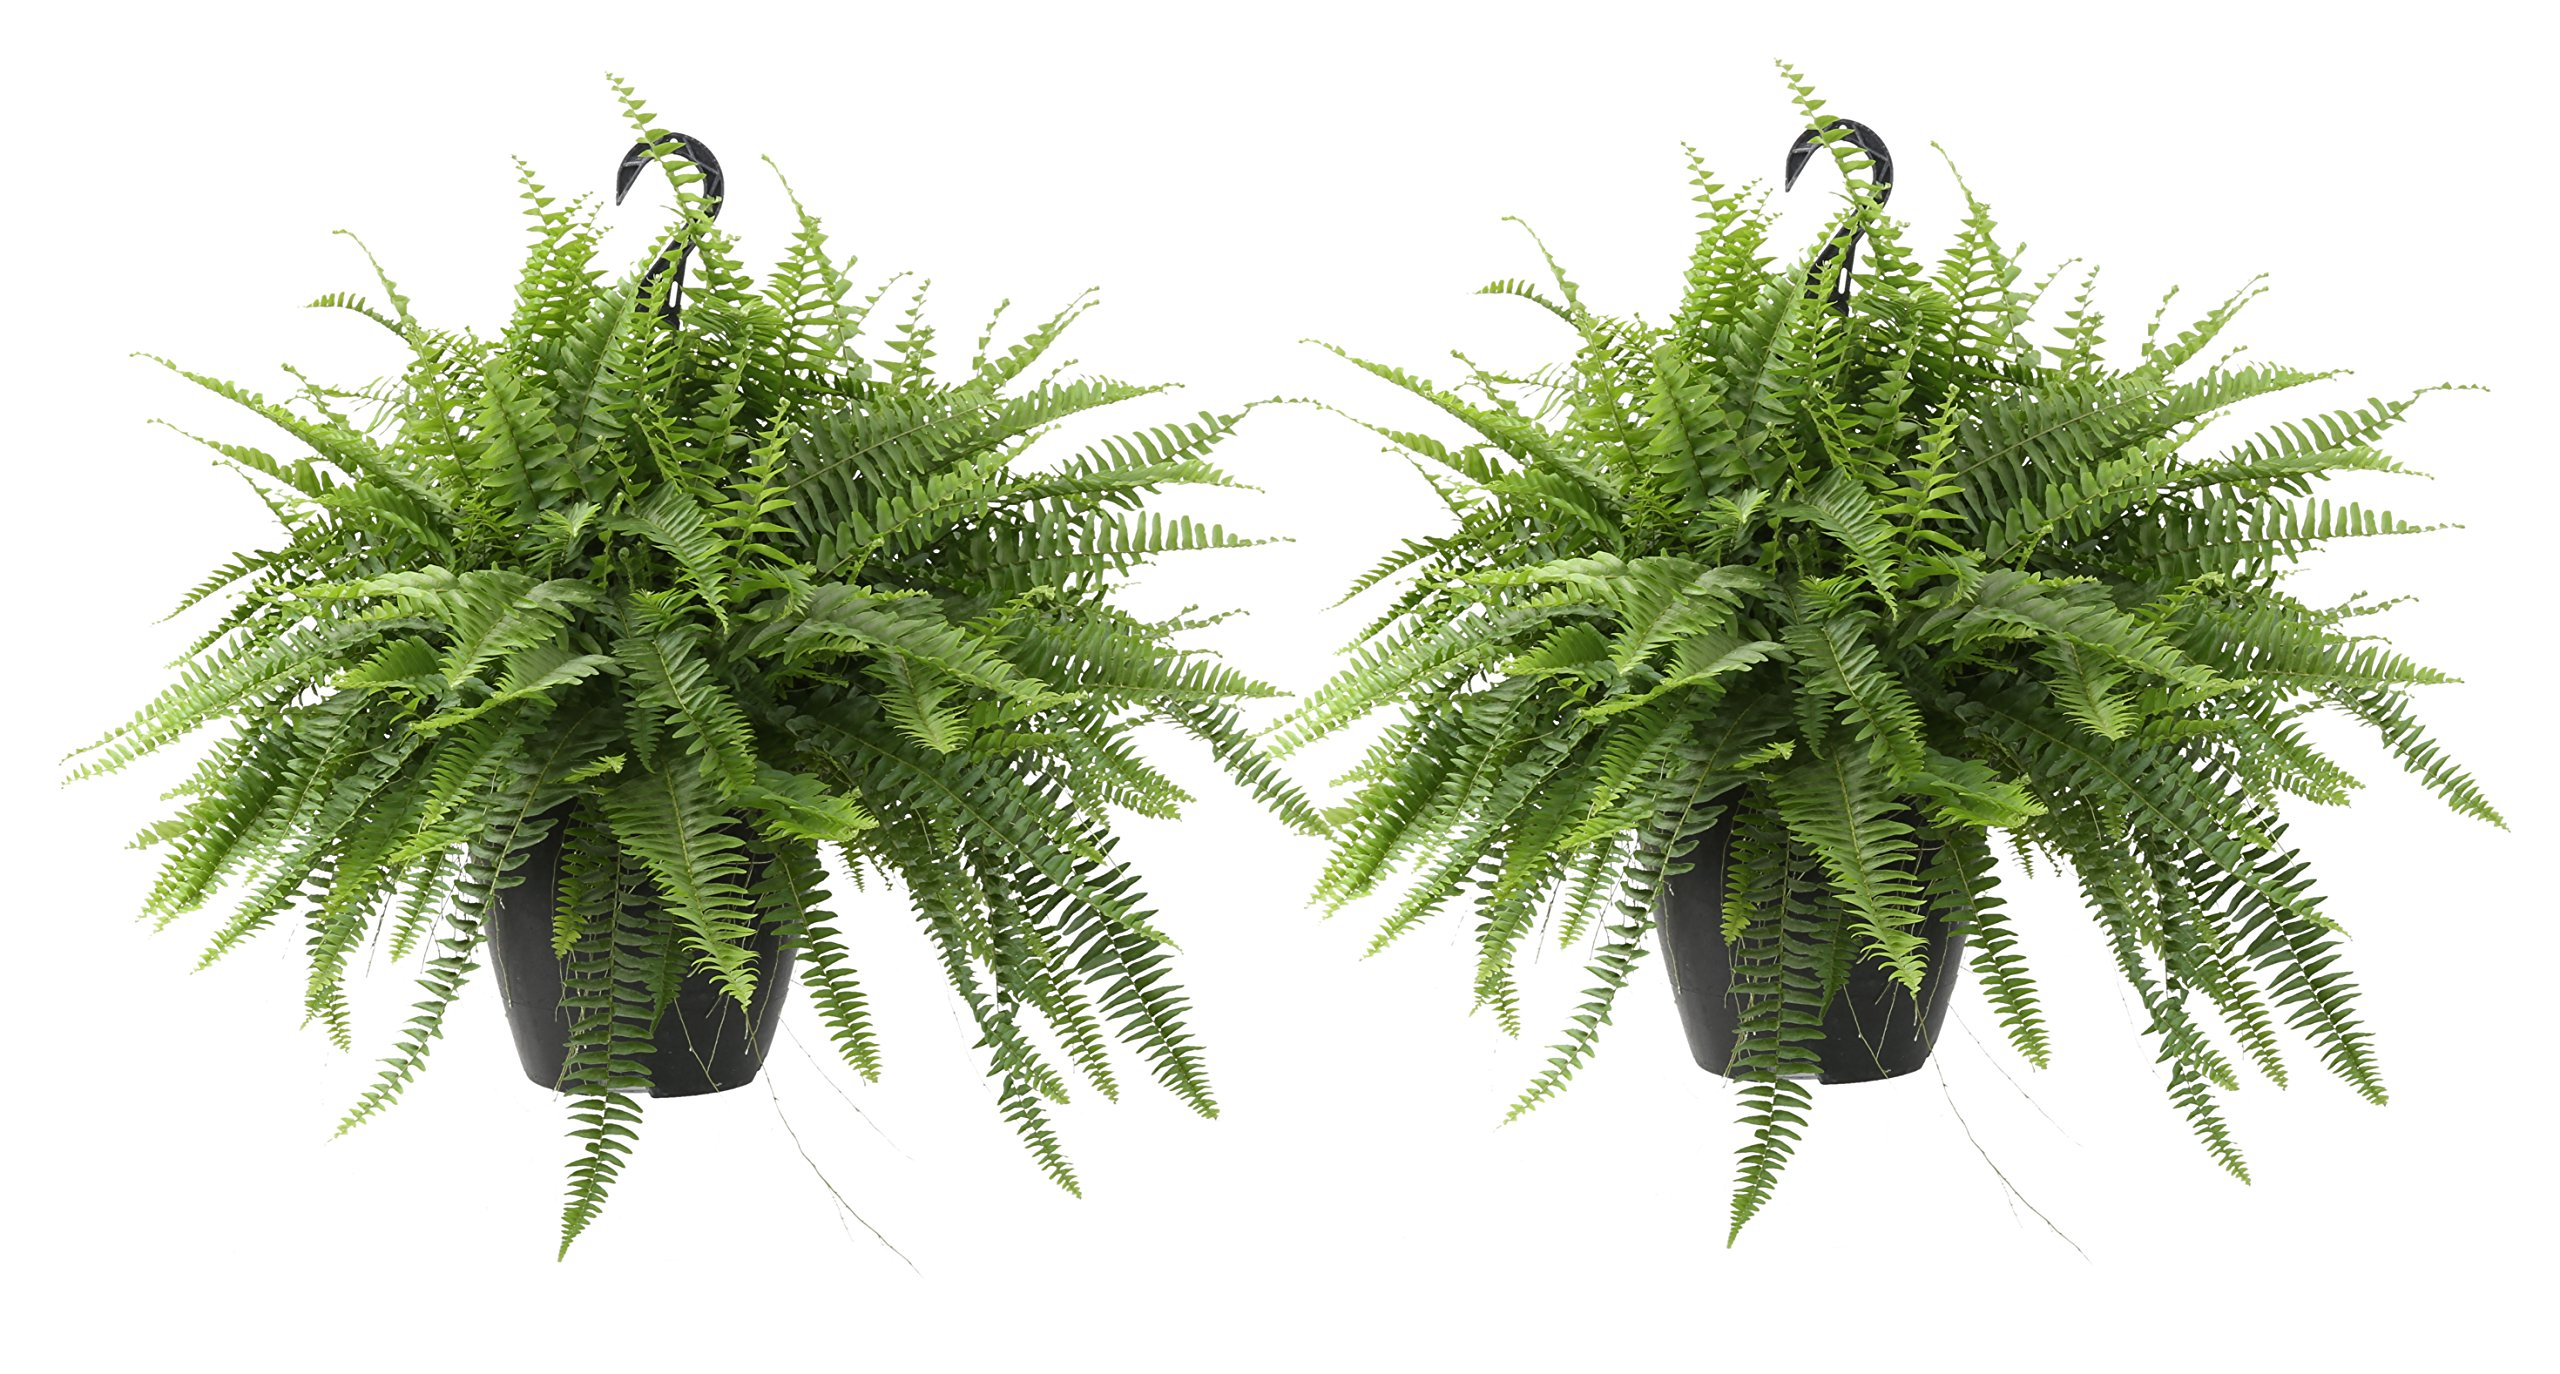 Costa Farms Home Décor, Premium Live Boston Fern Hanging Basket, 2-Pack, Direct from Farm by Costa Farms